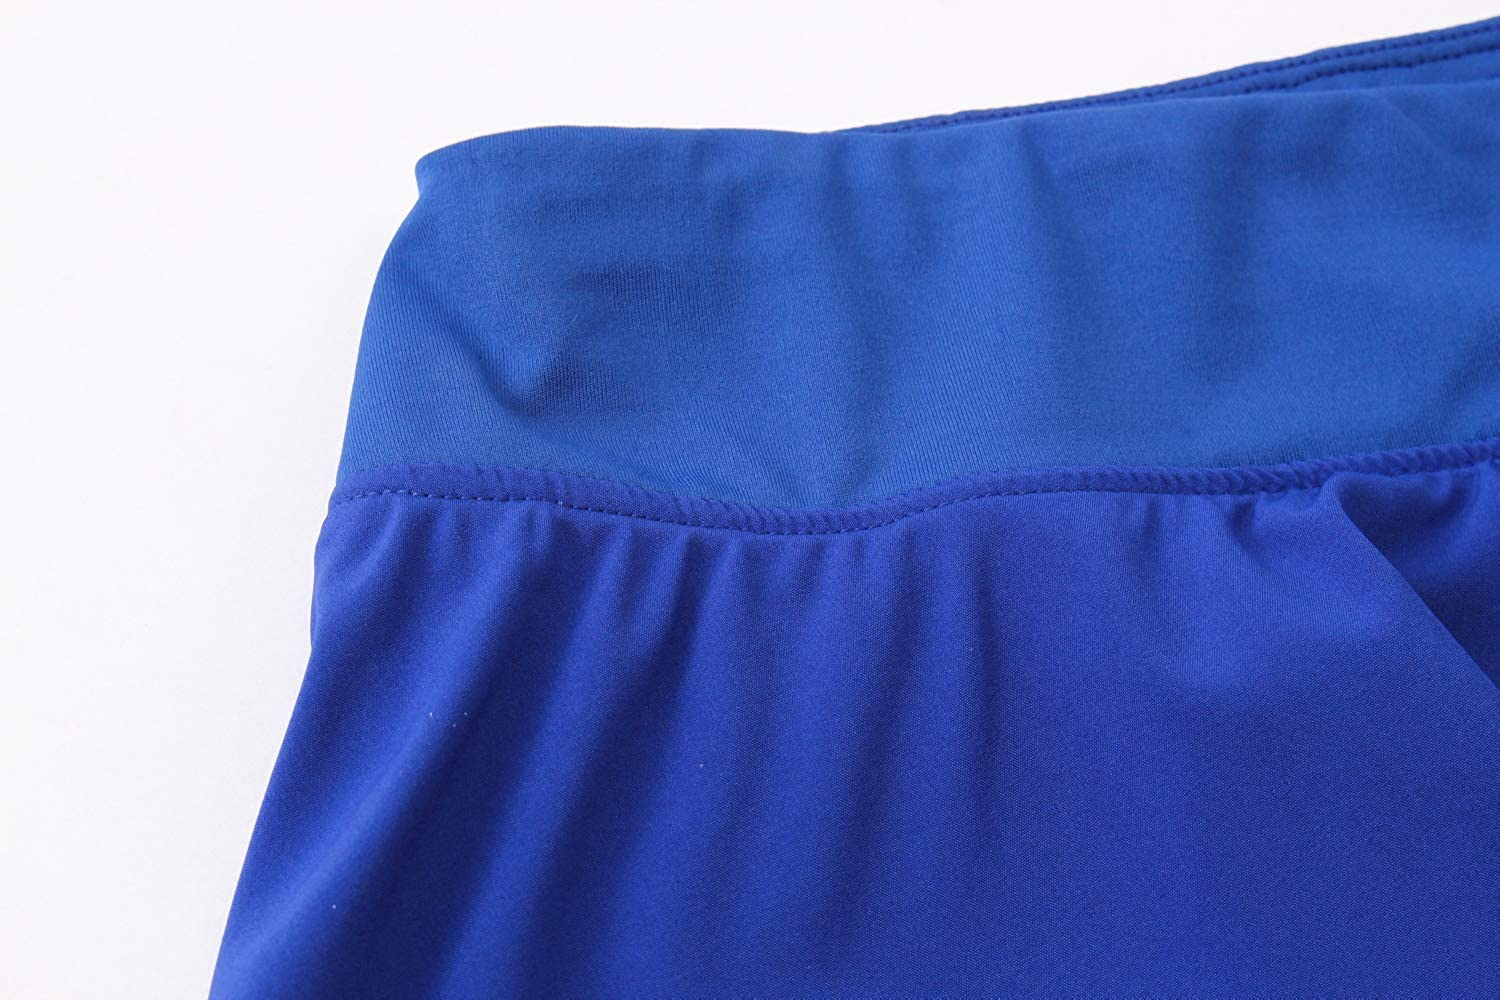 Tailloday Womens Sports High Waist Pleated Elastic Quick-Drying Yoga Tennis Skirt with Panty